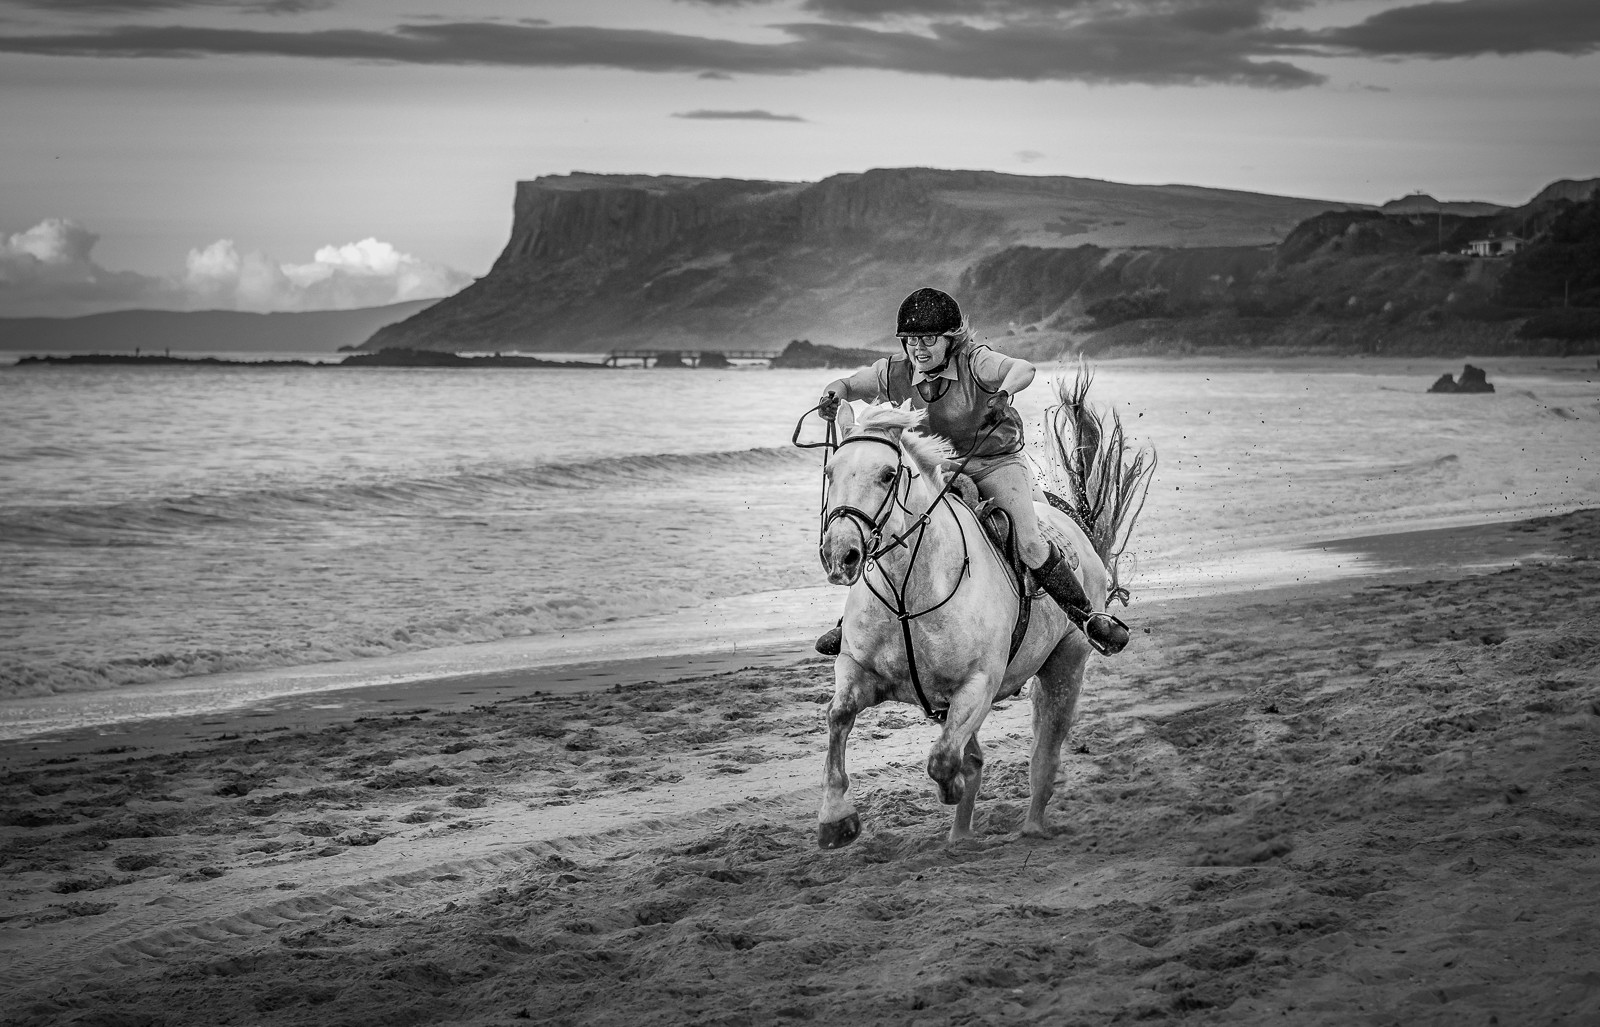 MONO - At A Gallop by Michael Mulholland ( 14 marks) - Starred